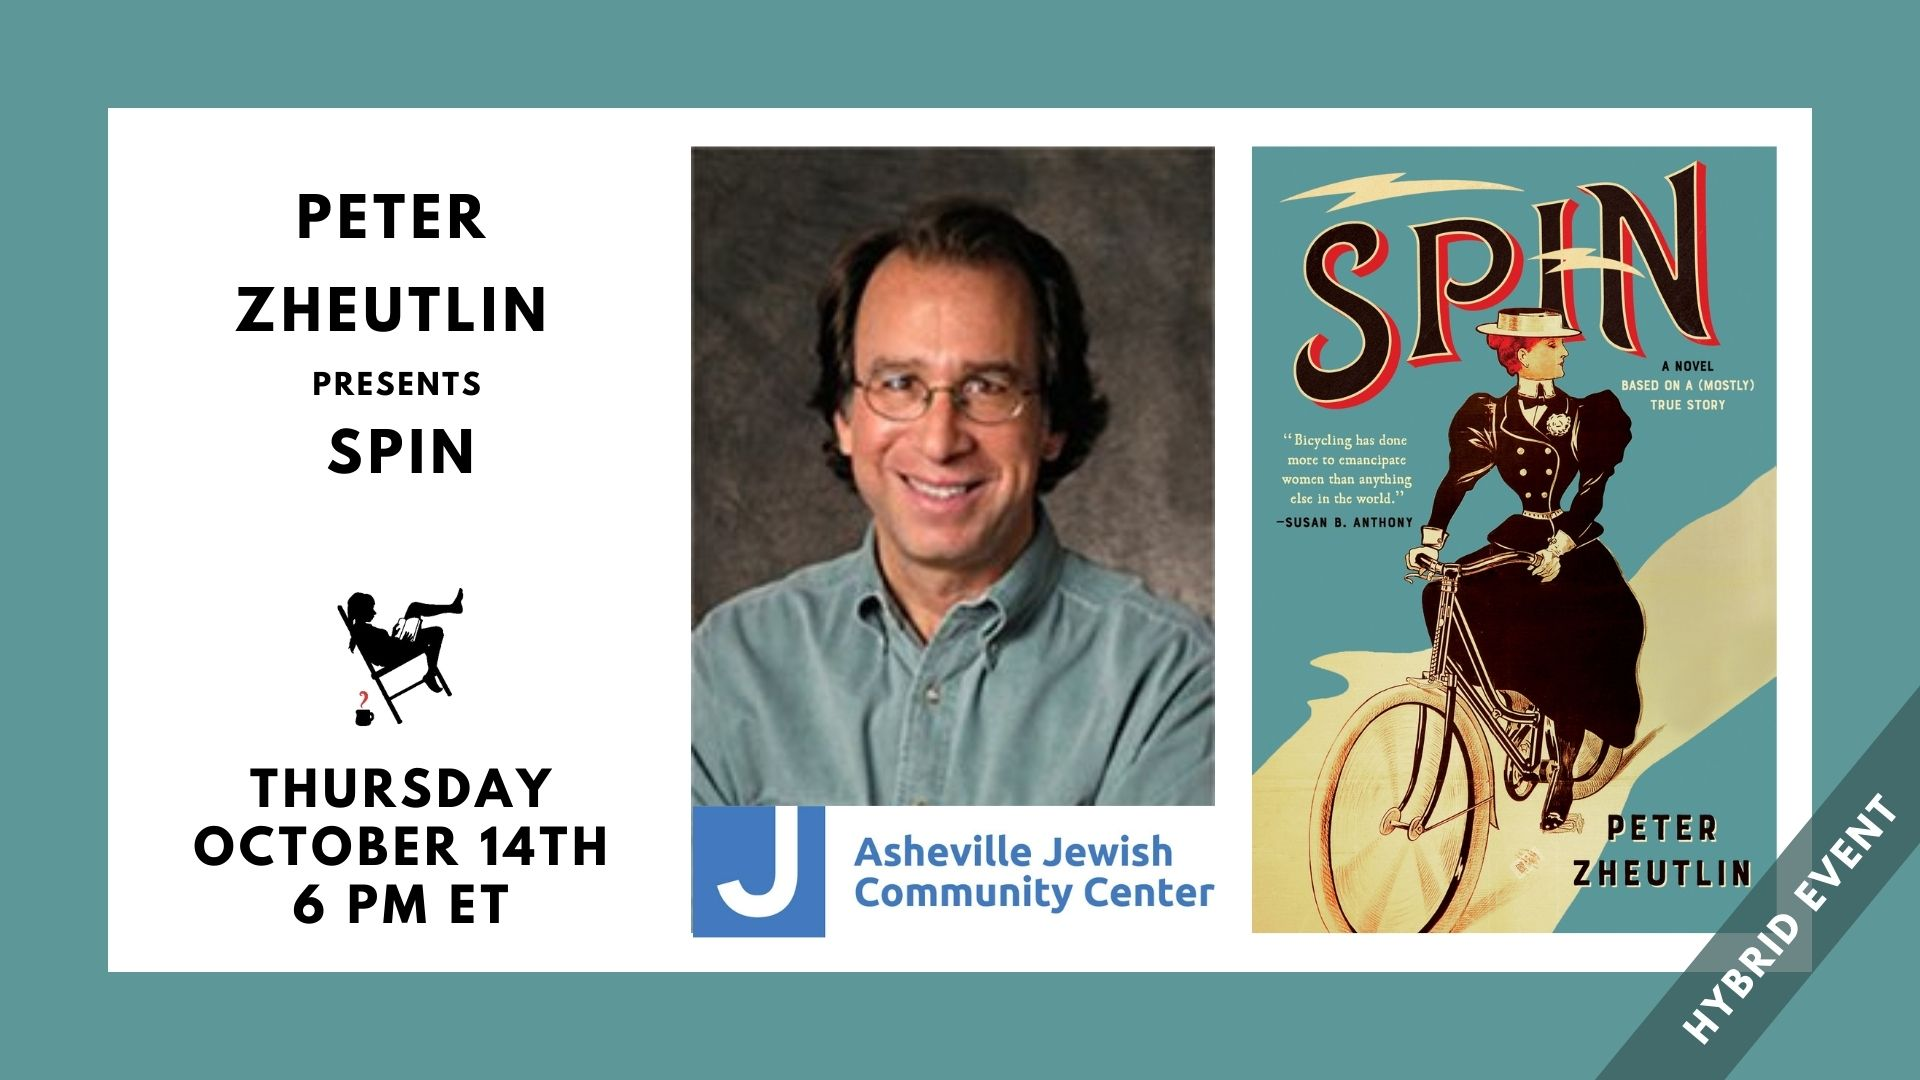 Image contains event title, event date, and images of Peter Zheutlin, the JCC logo, and the cover of Spin